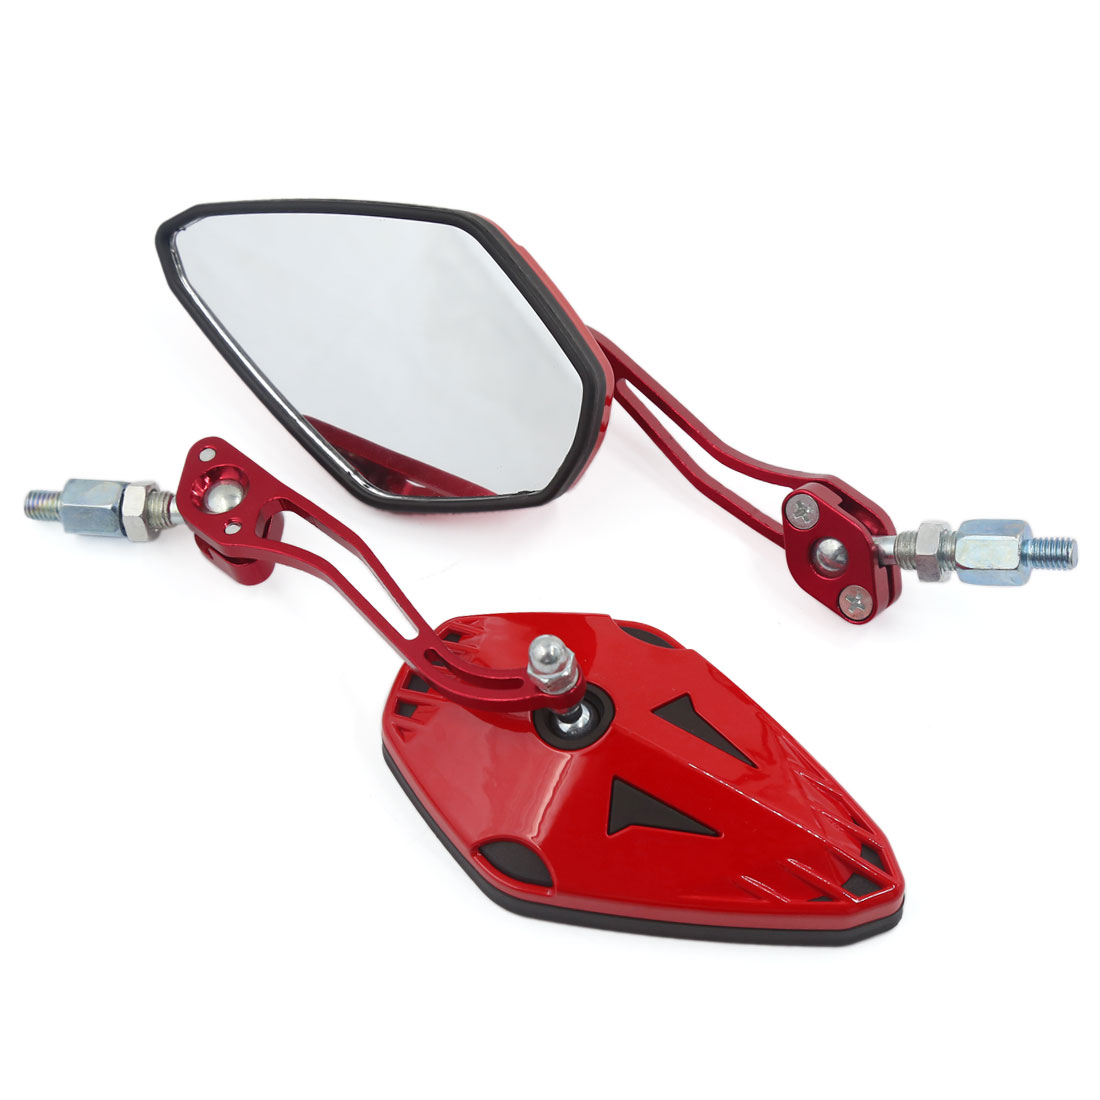 Universal Motorcycle 8mm 10mm Thread Adjustable Rearview Side Mirrors Red Pair